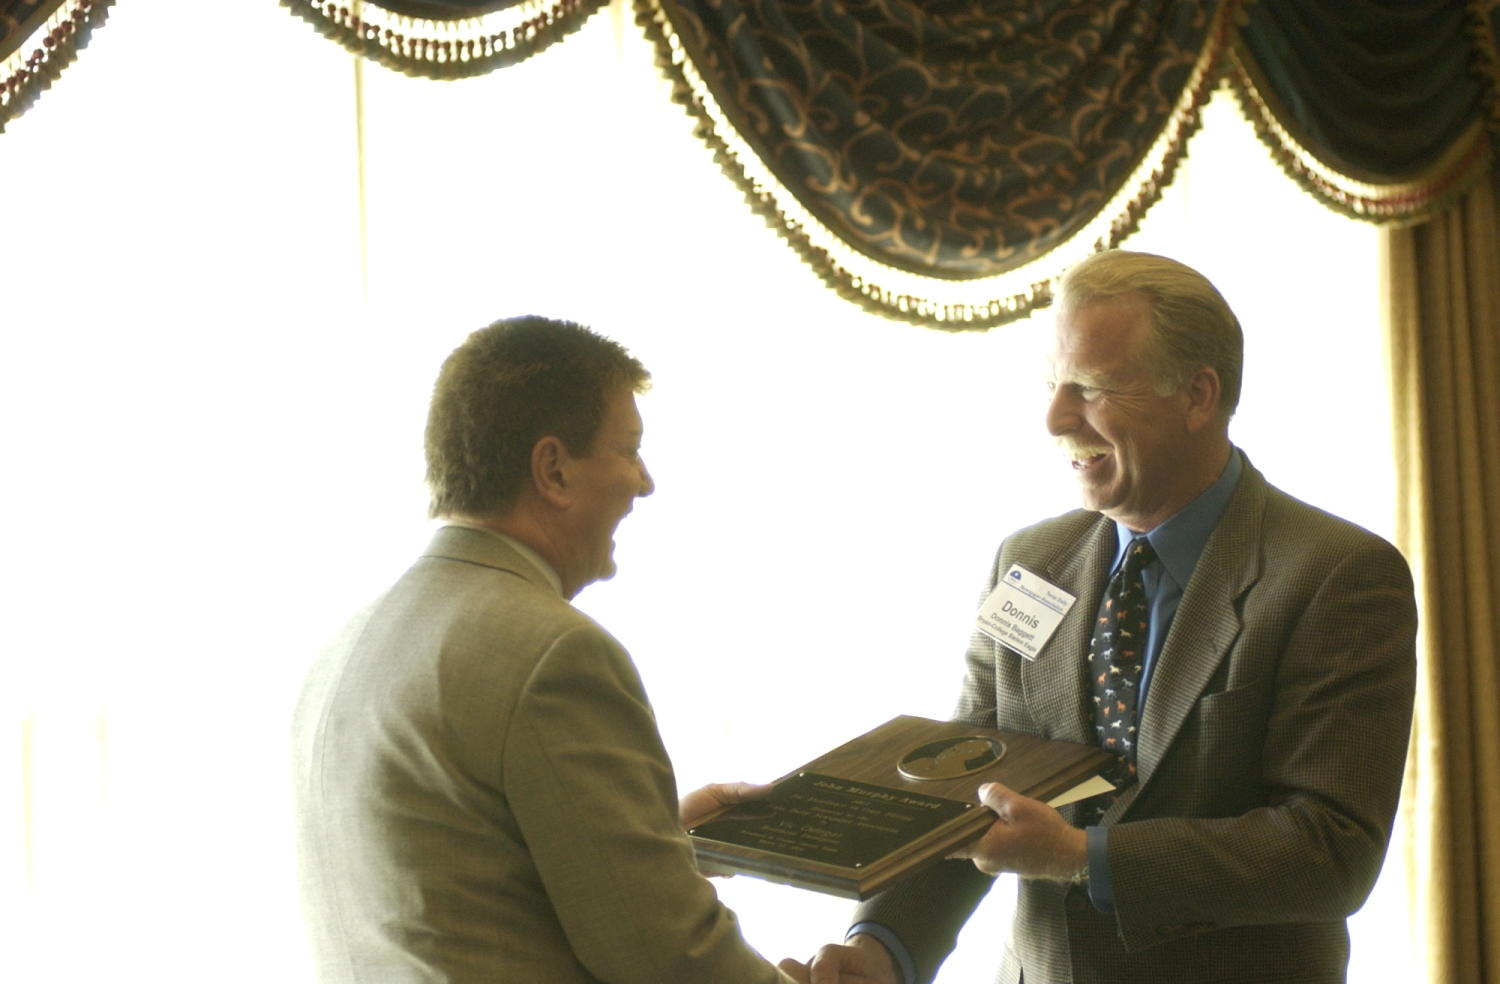 [Donnis Baggett handing out a John Murphy Award], Photograph of Donnis Baggett (right) handing out a man identified as Vic the John Murphy Award the 2004 Texas Daily News Association annual conference held in Corpus Christi. Baggett and the man are shaking hands as Baggett gives him the engraved plaque.,